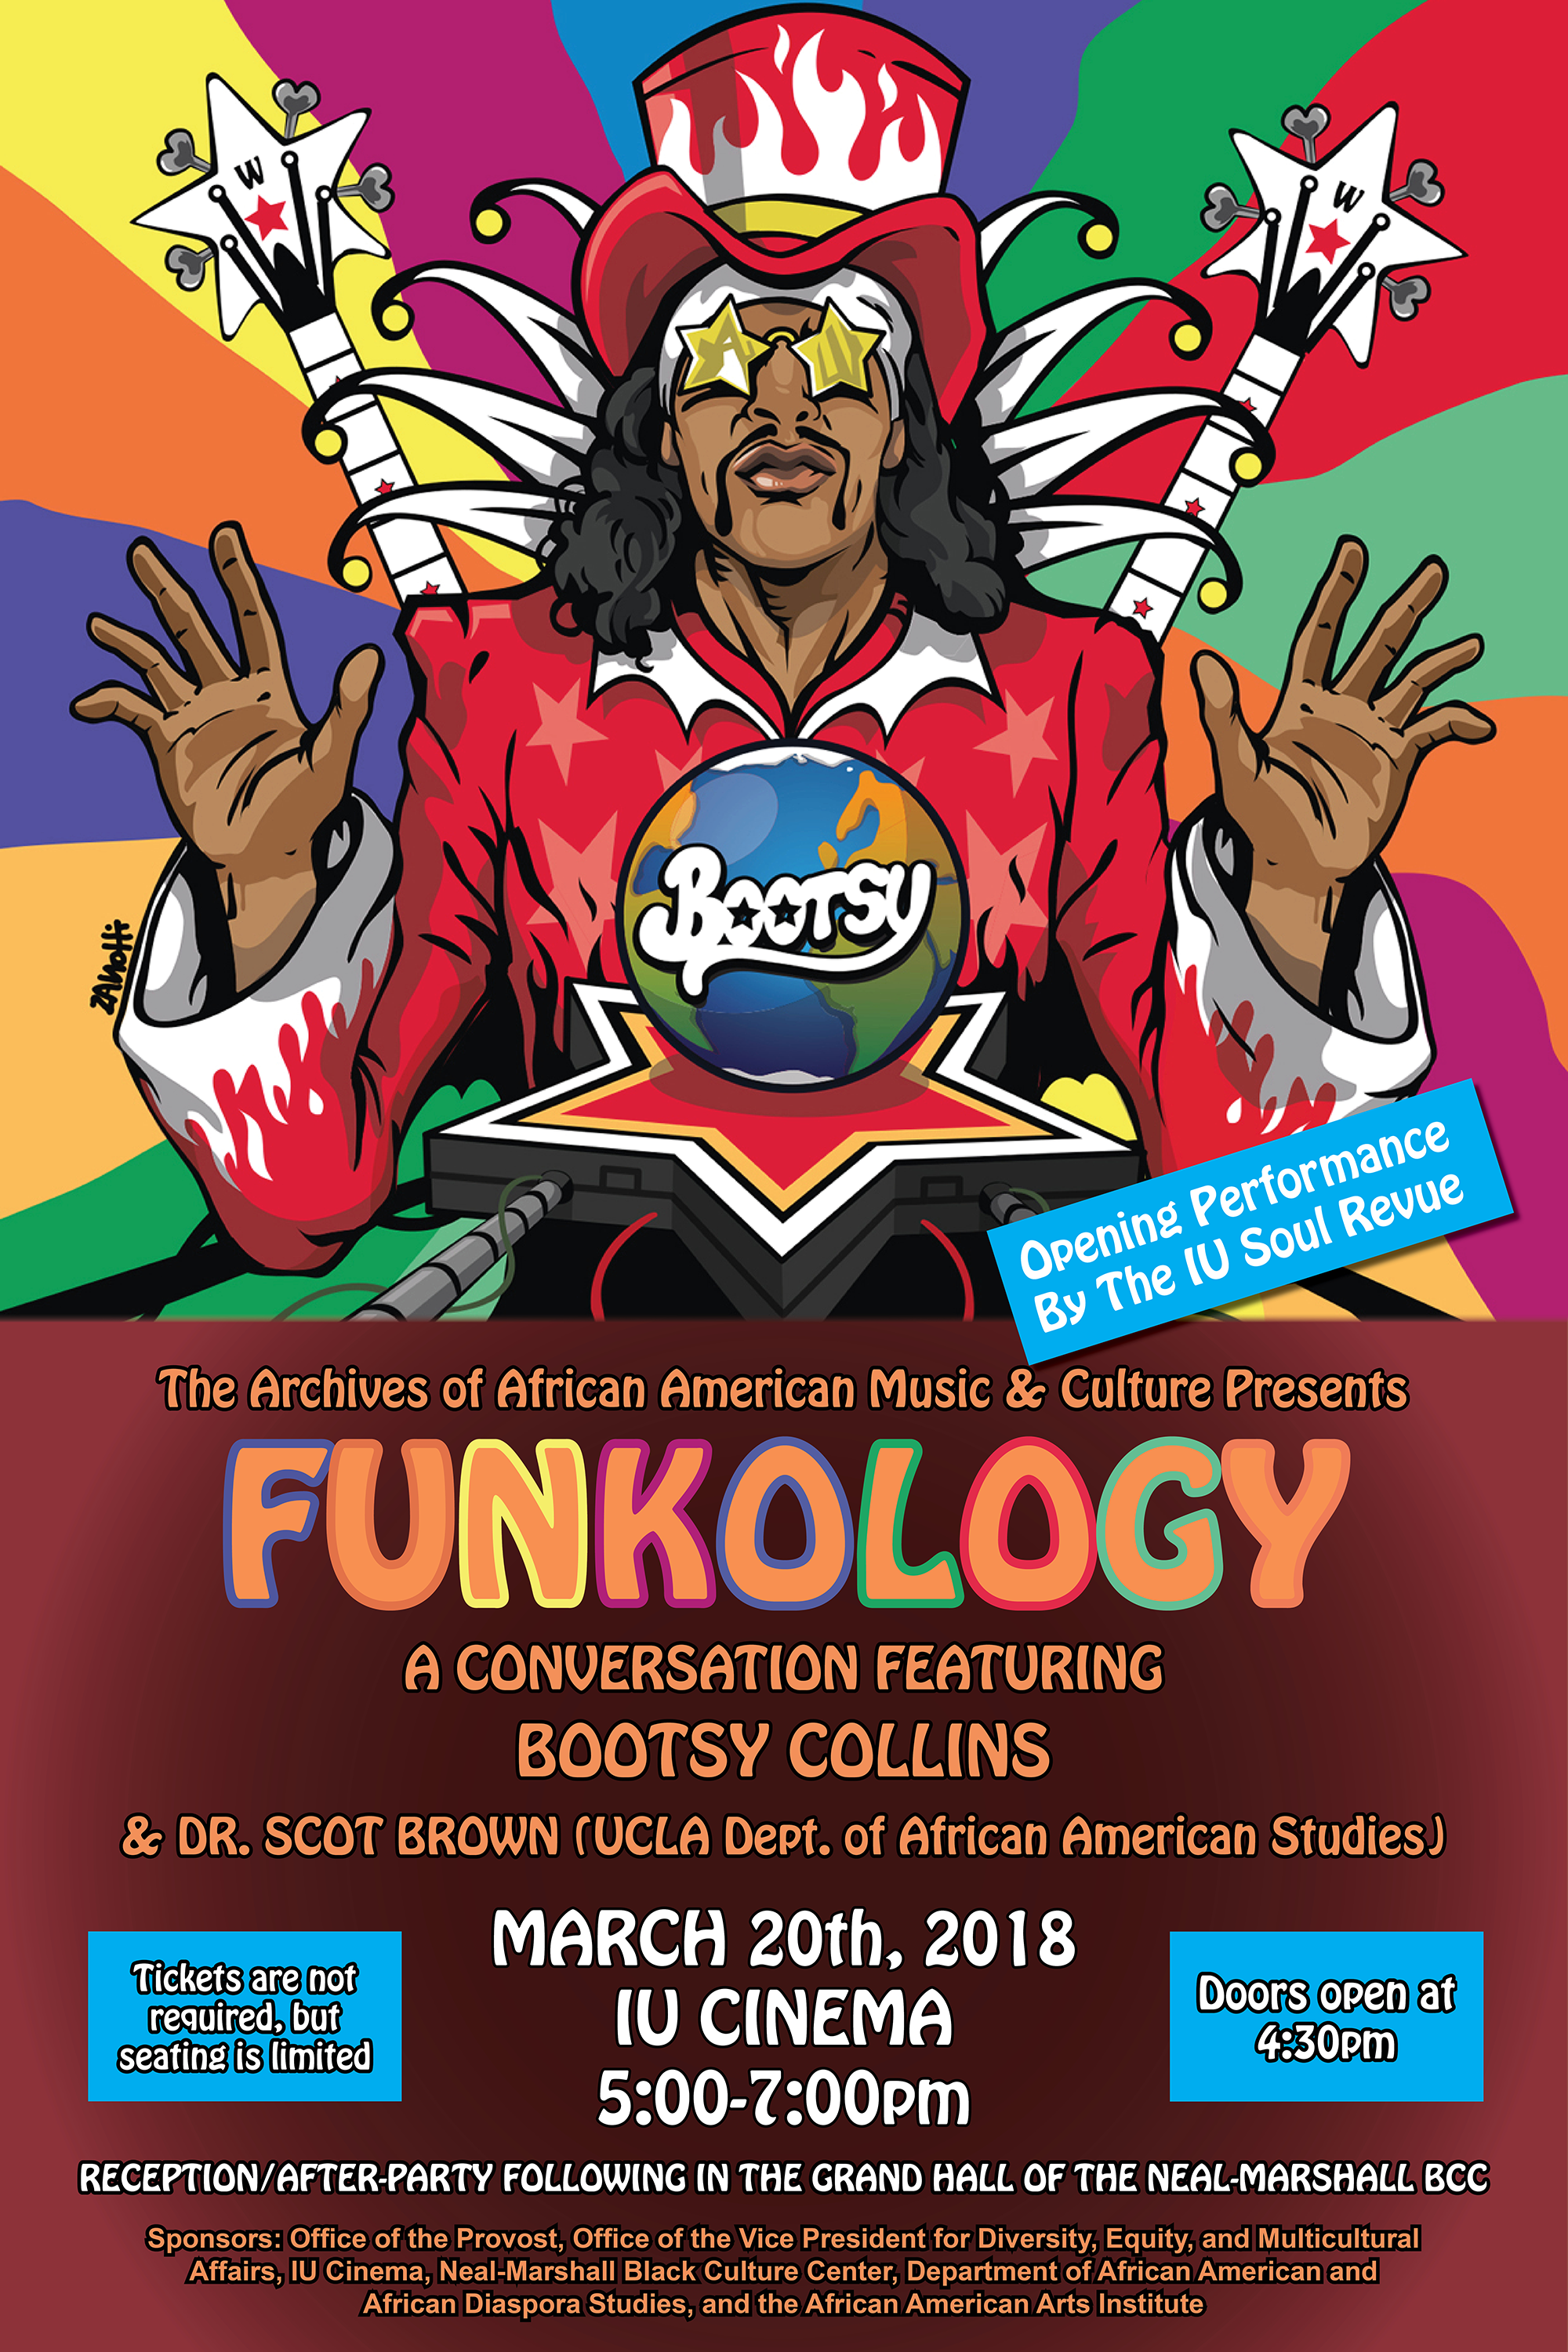 Funkology event graphic